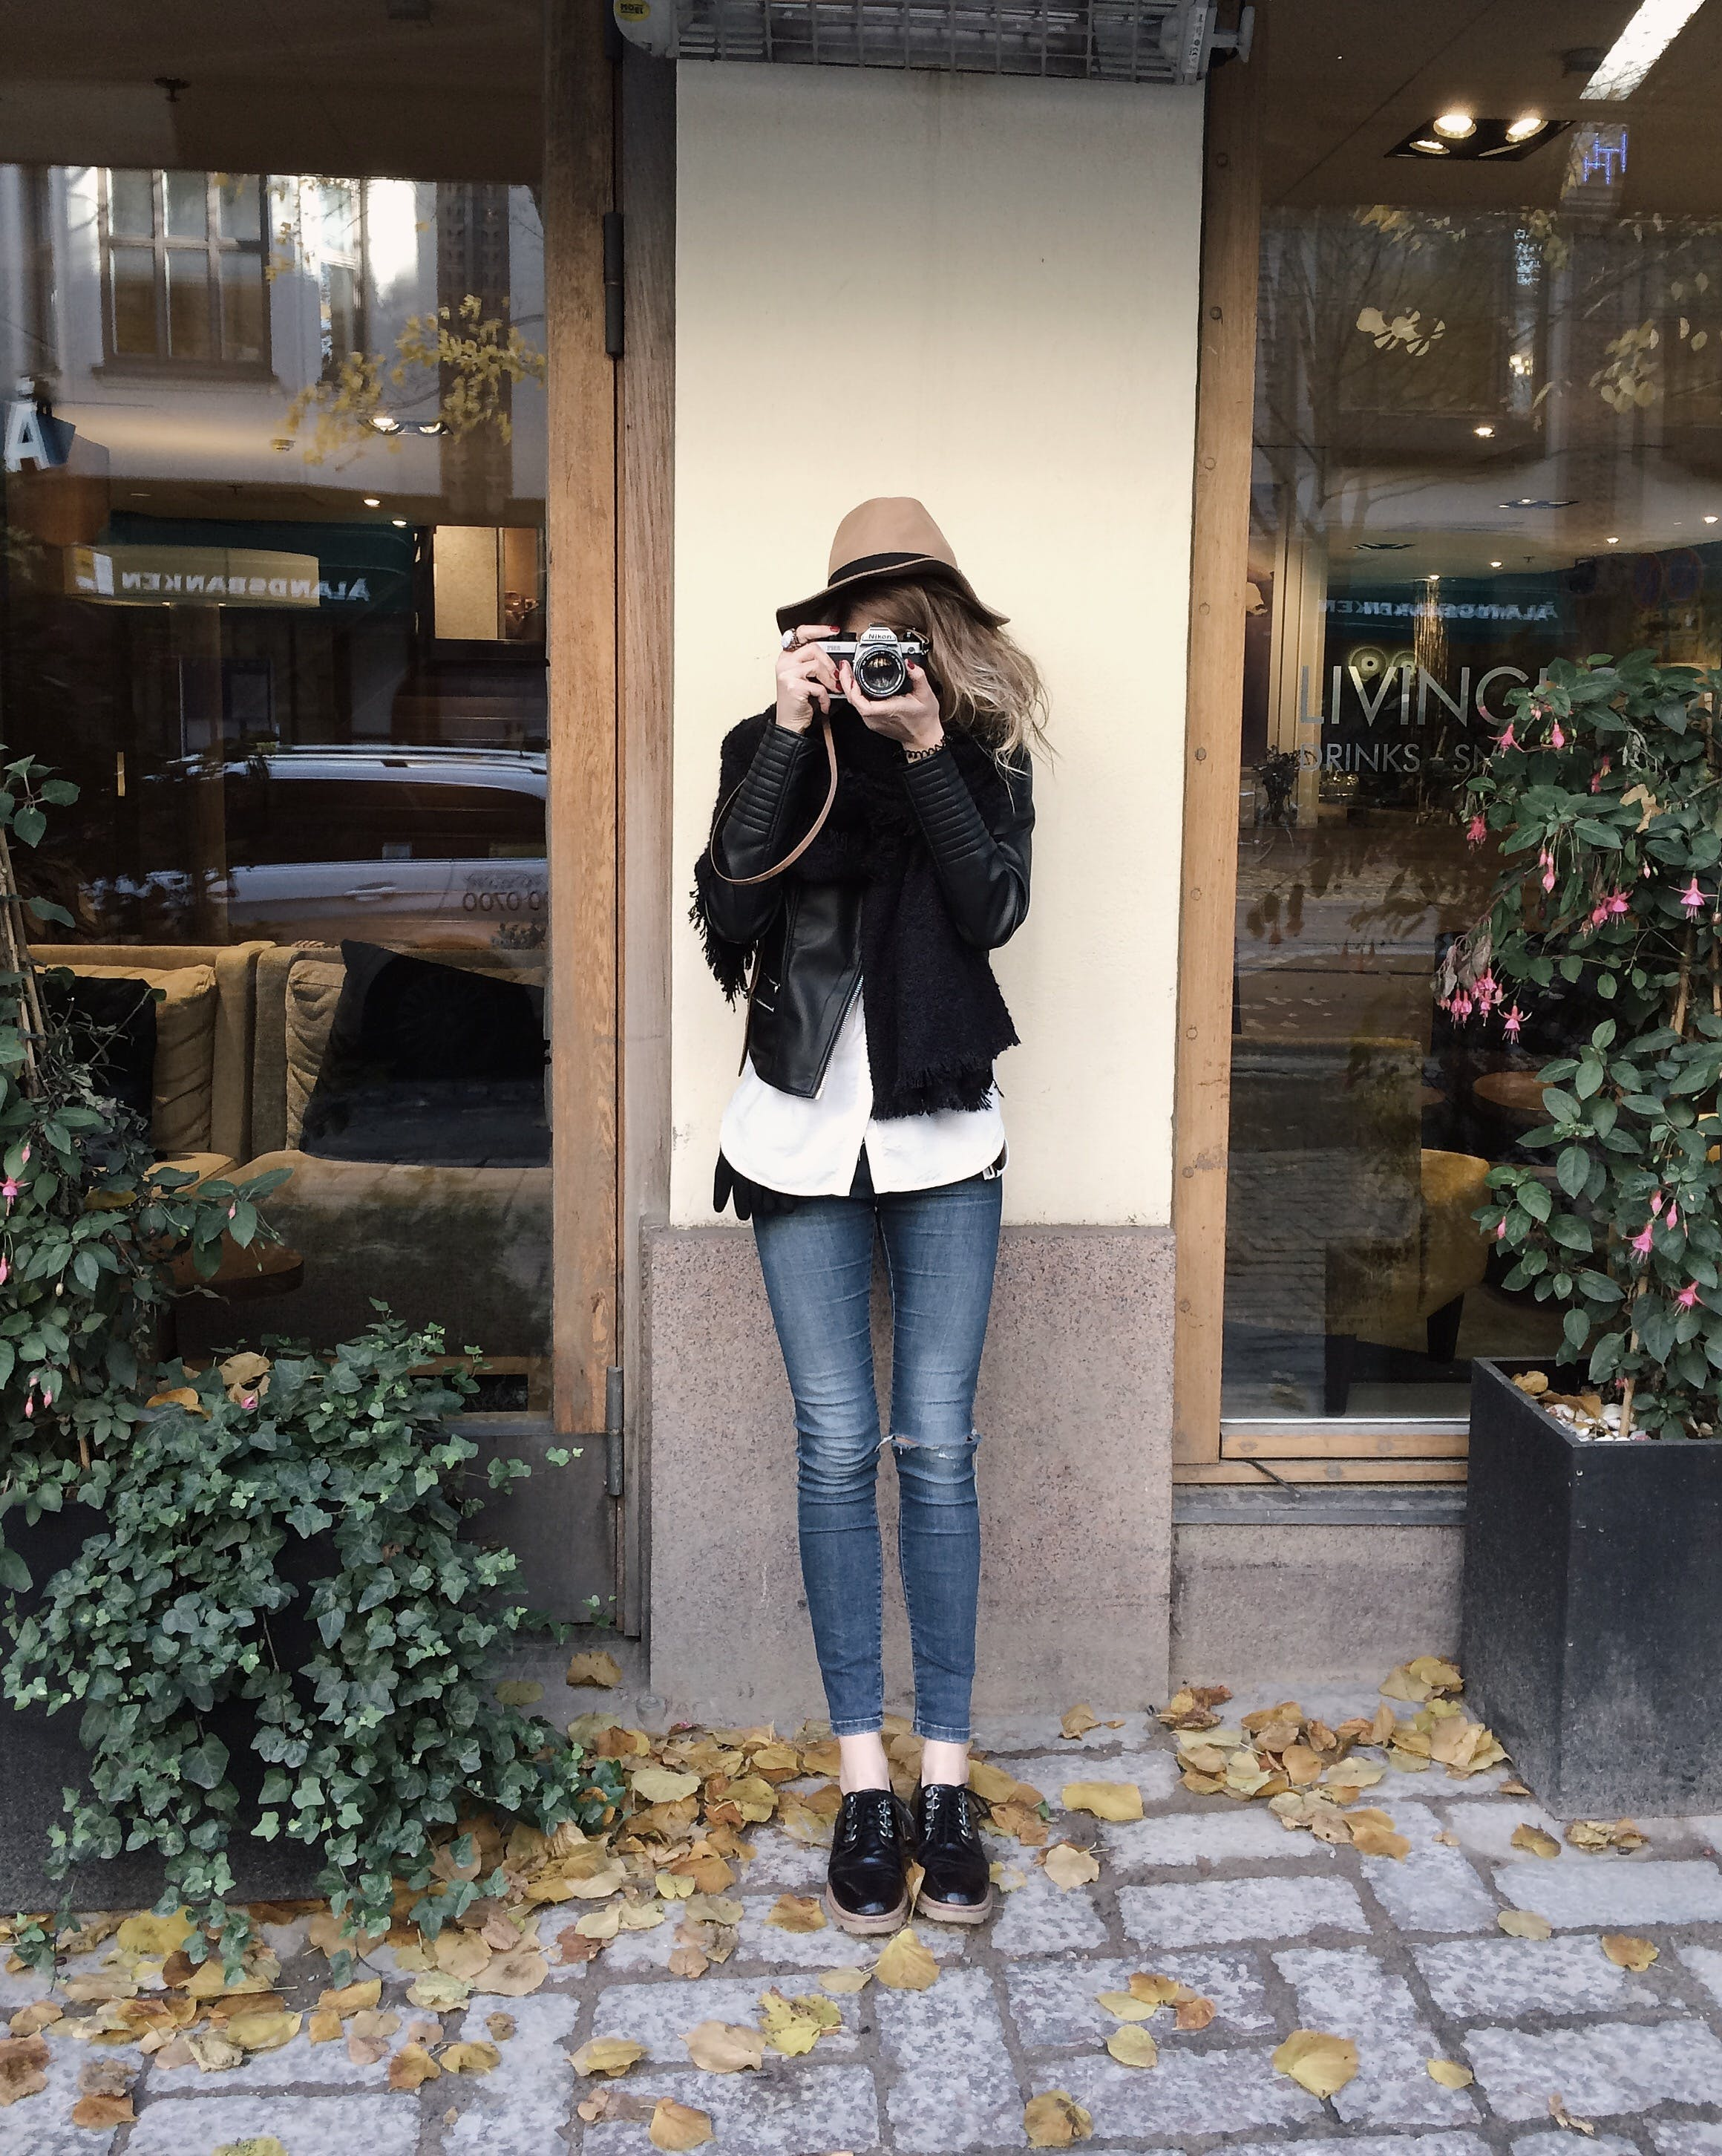 Woman Wearing Black Jacket and Blue Jeans Leaning on Wall